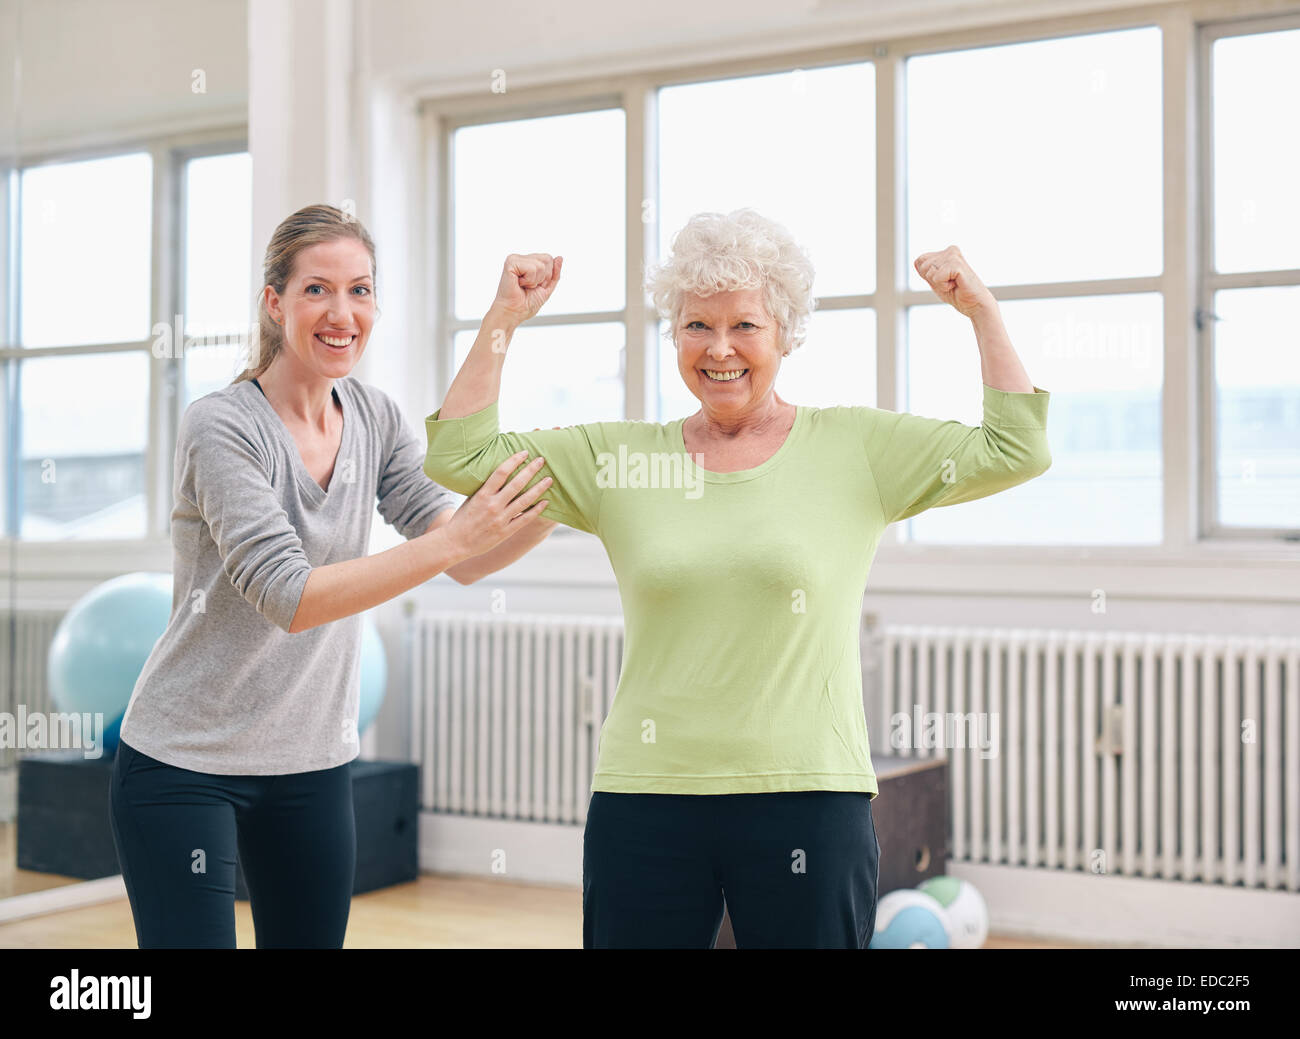 Portrait of a fit old woman flexing her arms and showing her muscles with personal trainer at gym Stock Photo